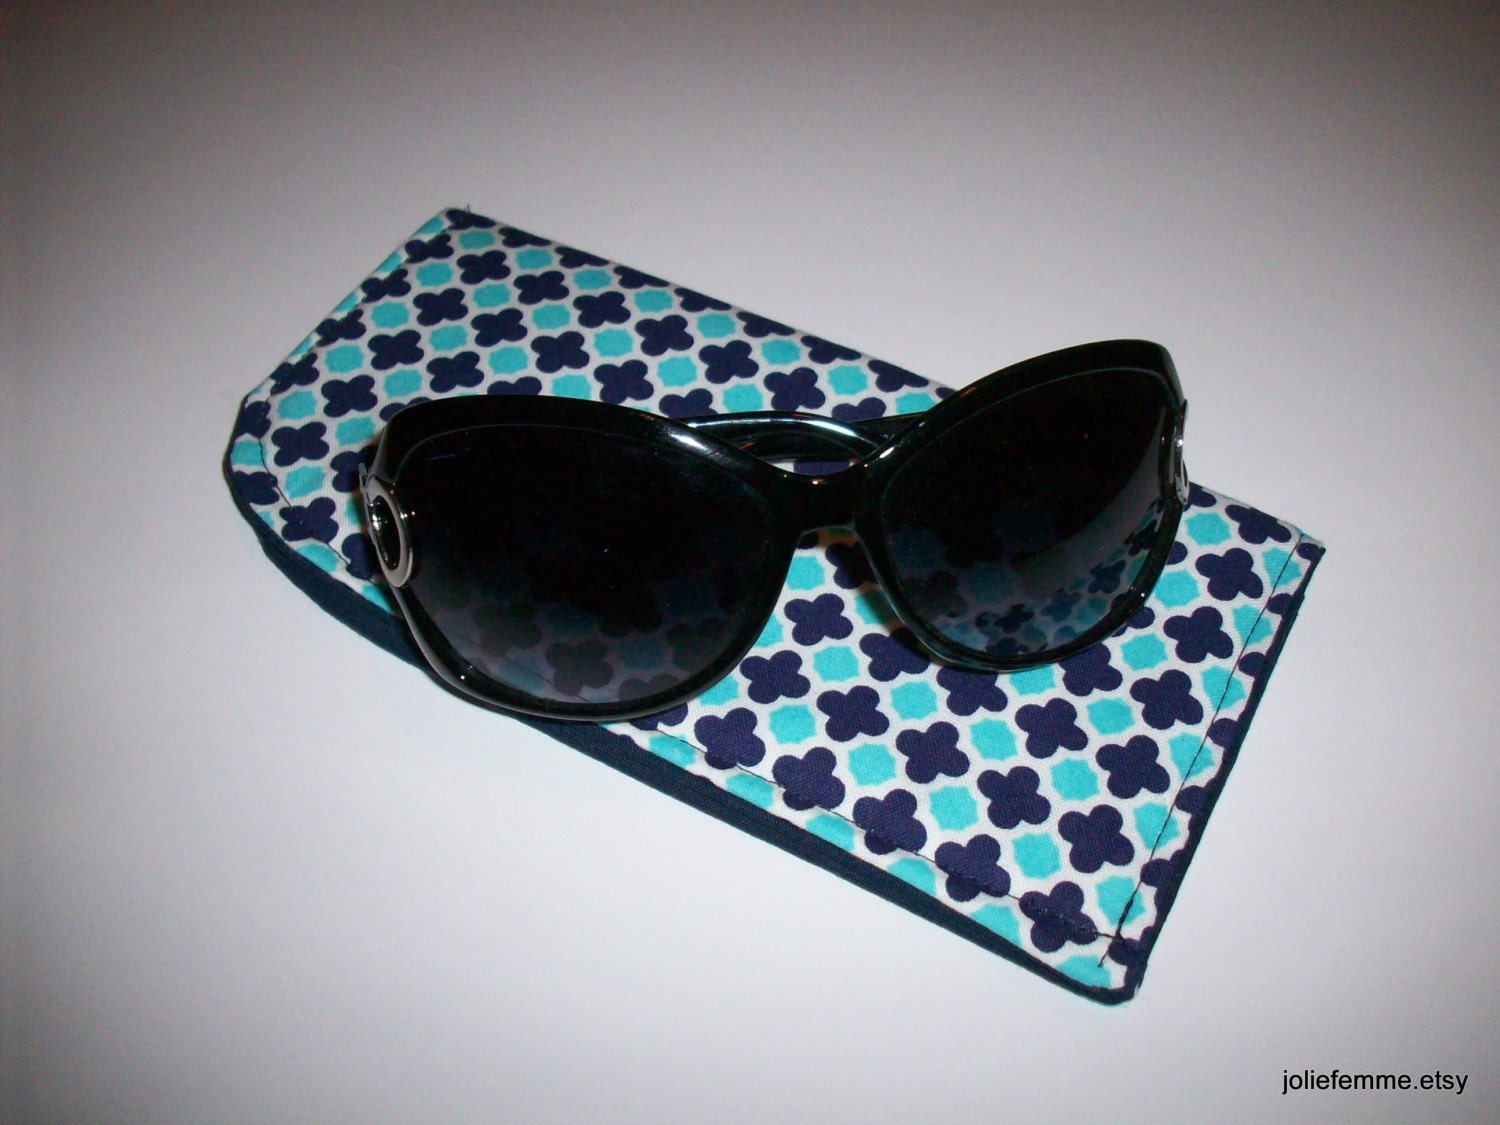 Cobalt Blue Morrocan Tiles Eyeglass or Sunglass Case Protective Padded Pouch Choose your Size - joliefemme